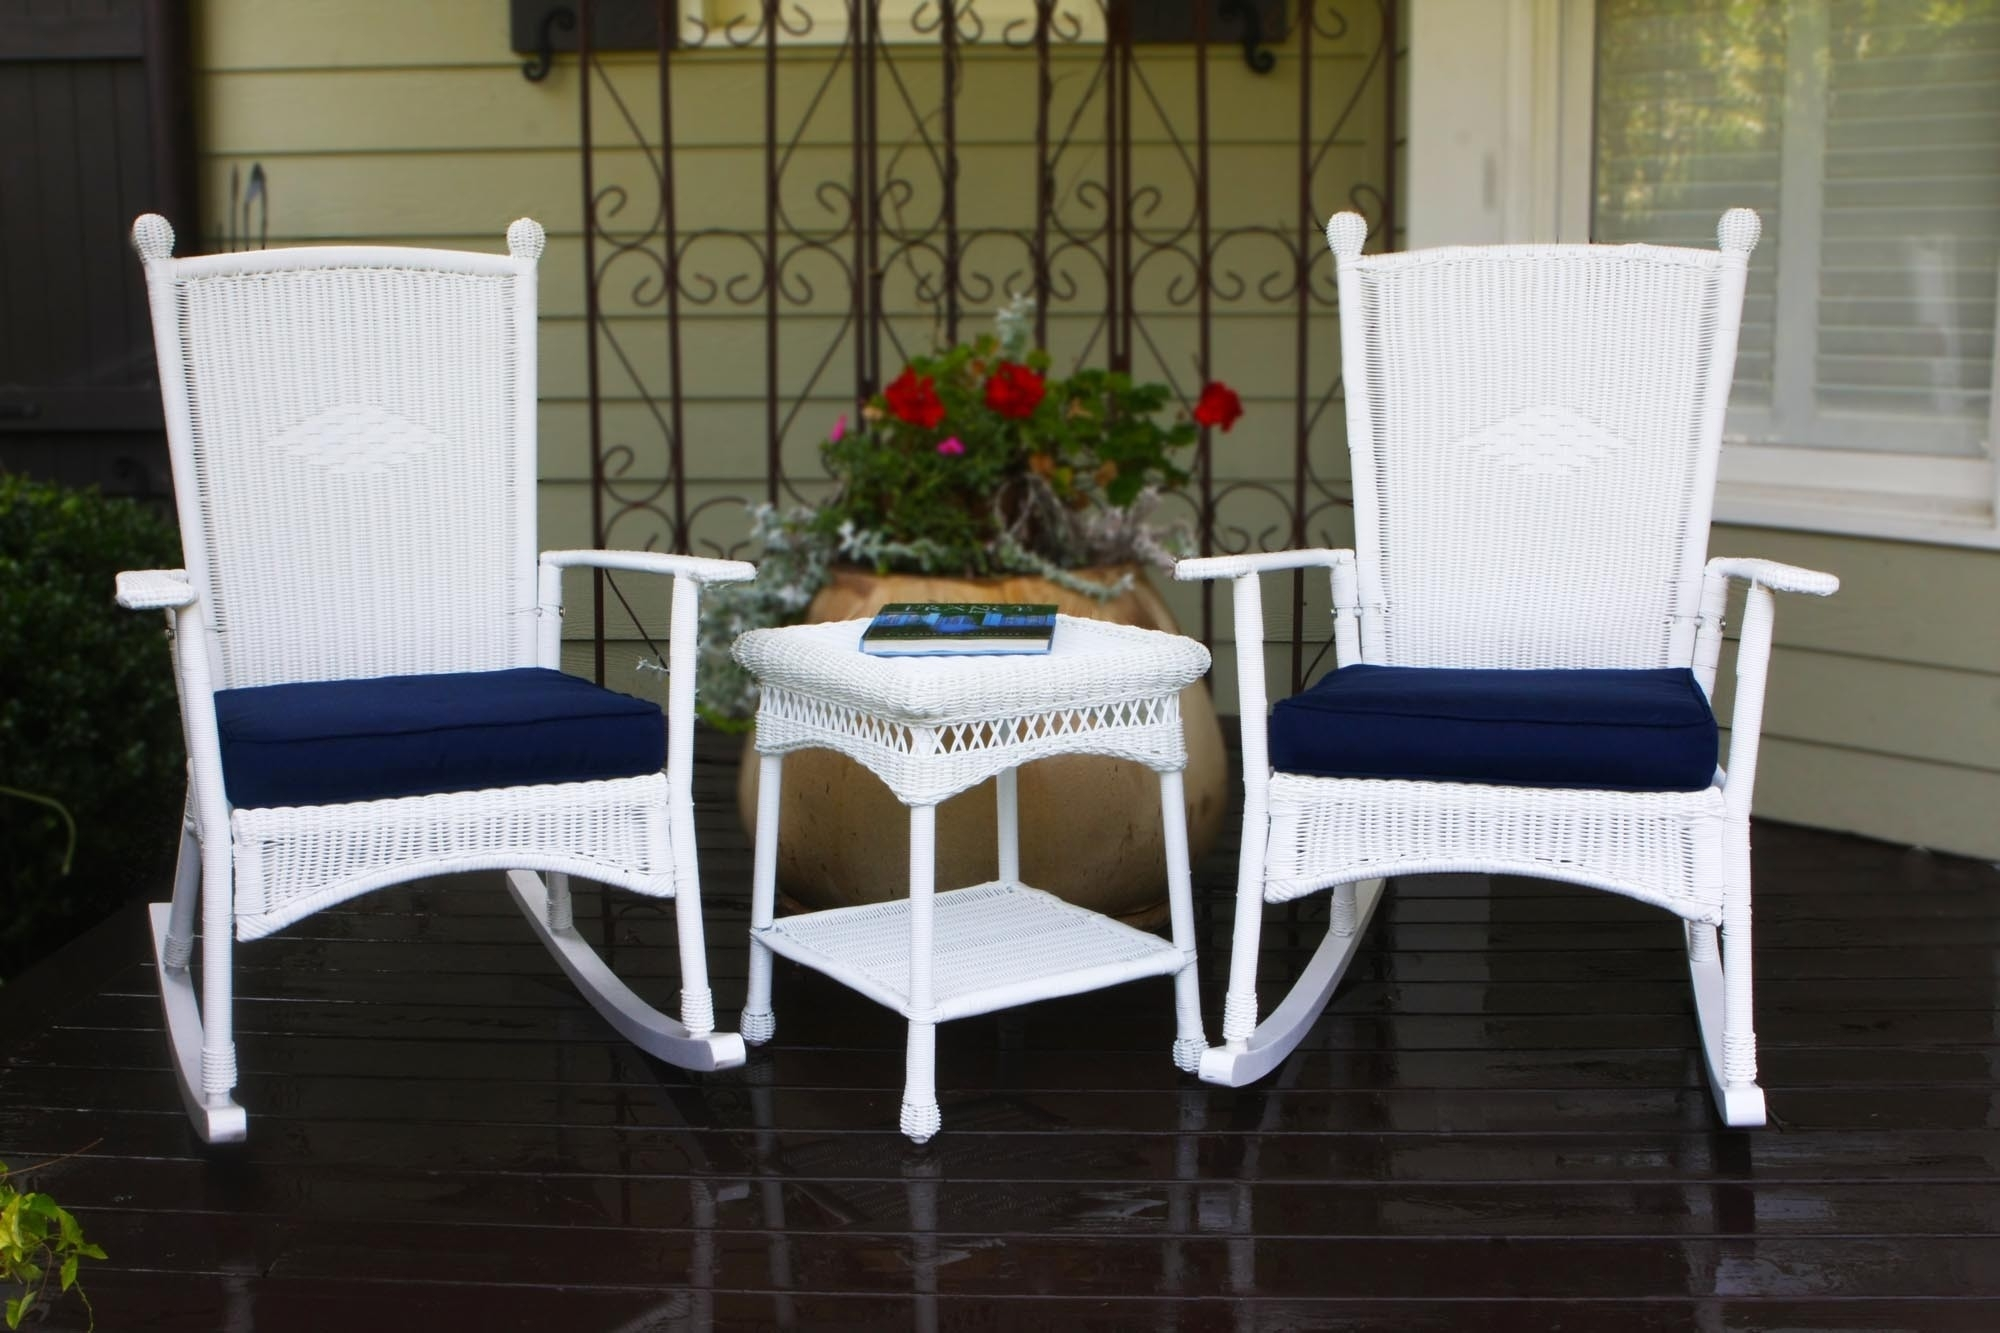 Inspiration about Top White Wicker Rocking Chair — Wilson Home Ideas : Choosing A Inside White Wicker Rocking Chairs (#10 of 15)